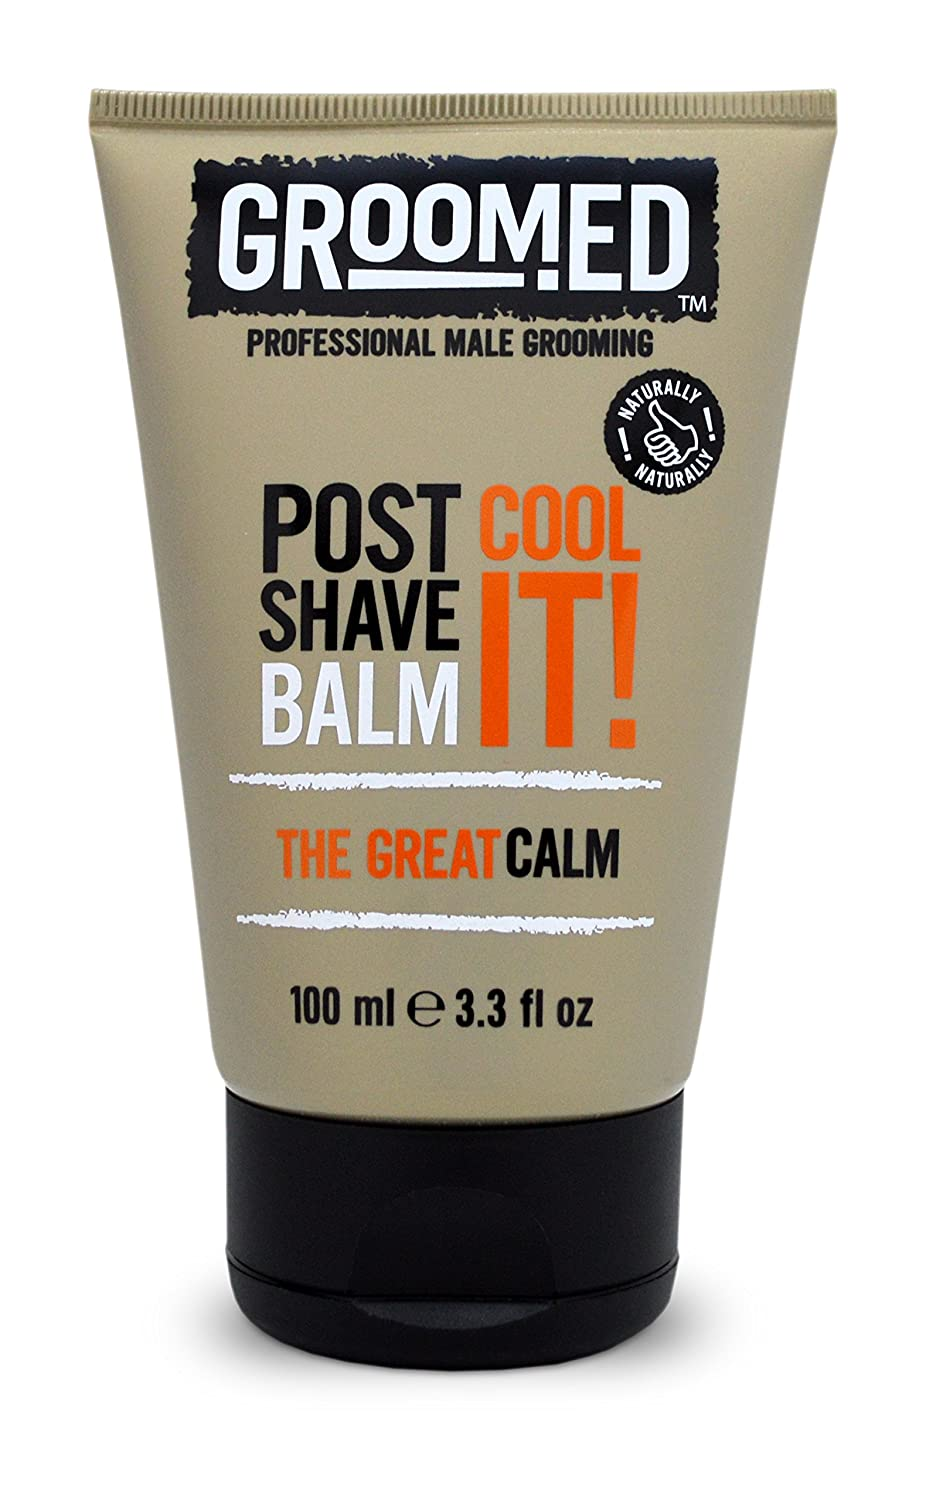 Groomed Post Shave Balm Cool It! The Great Calm 100 Ml 3.3 Fl Oz Professional Male Grooming Potter & Moore